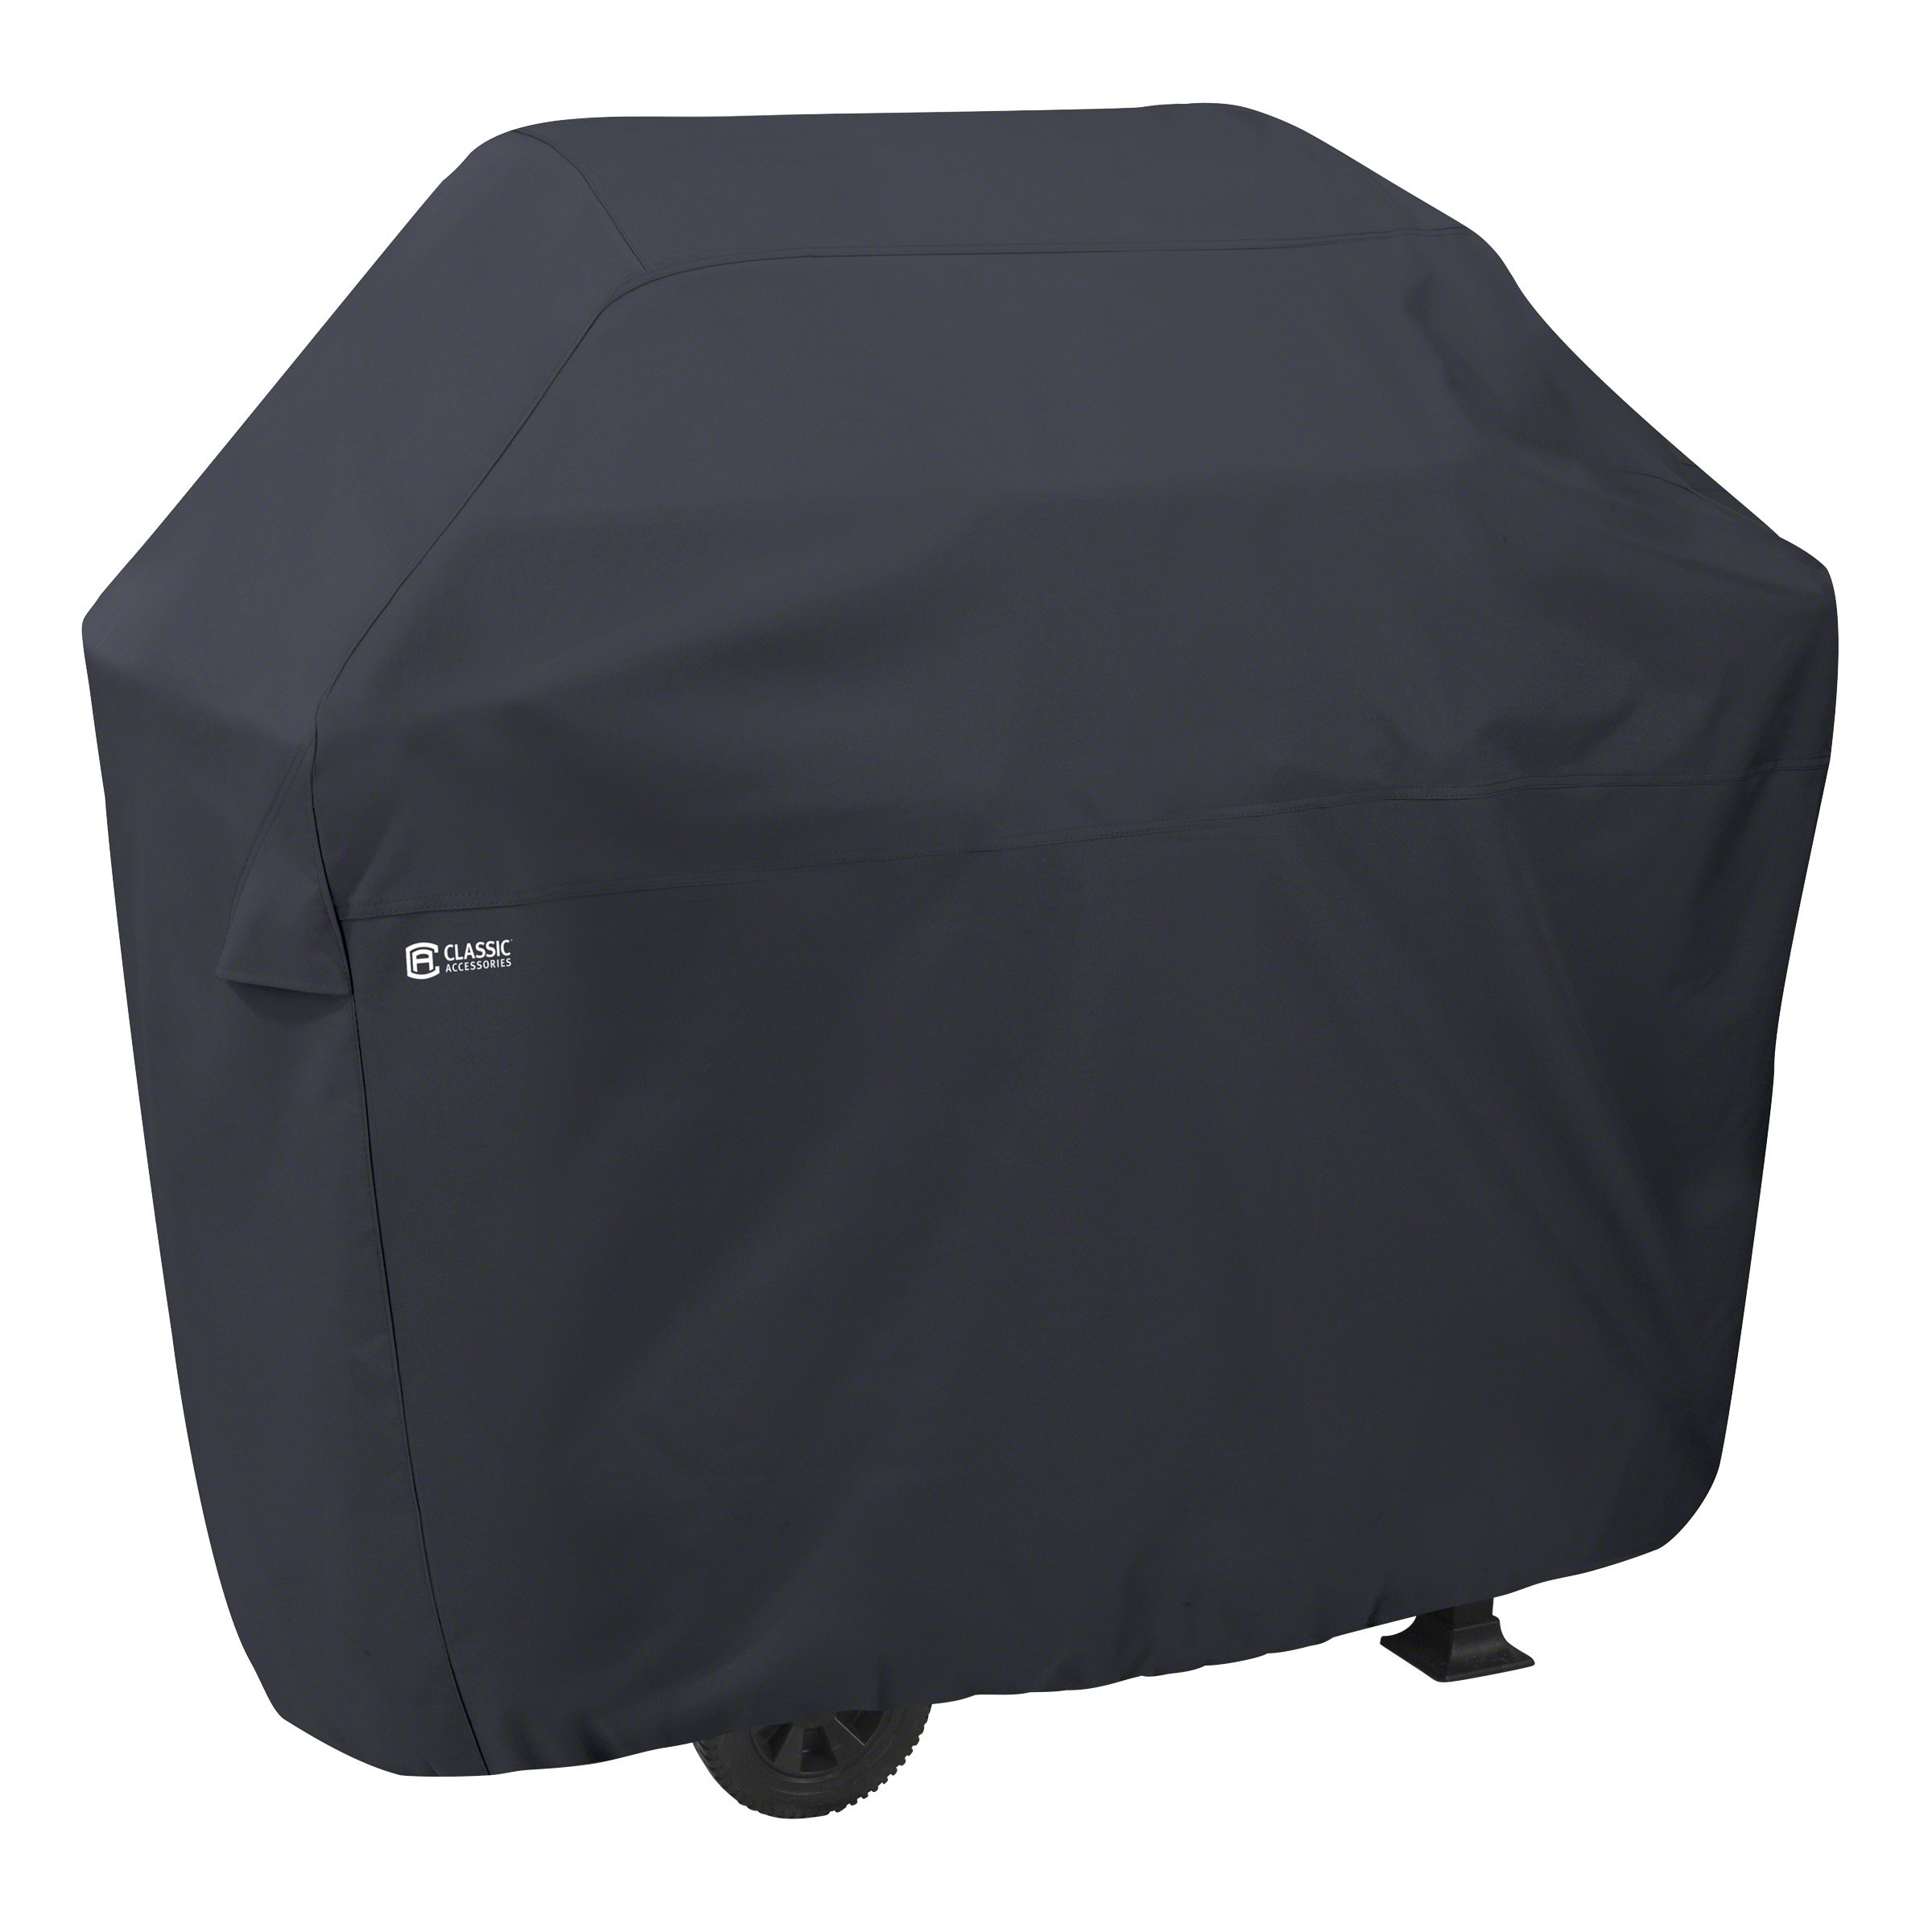 Classic Accessories Grill Cover, X-Small, Black by Classic Accessories